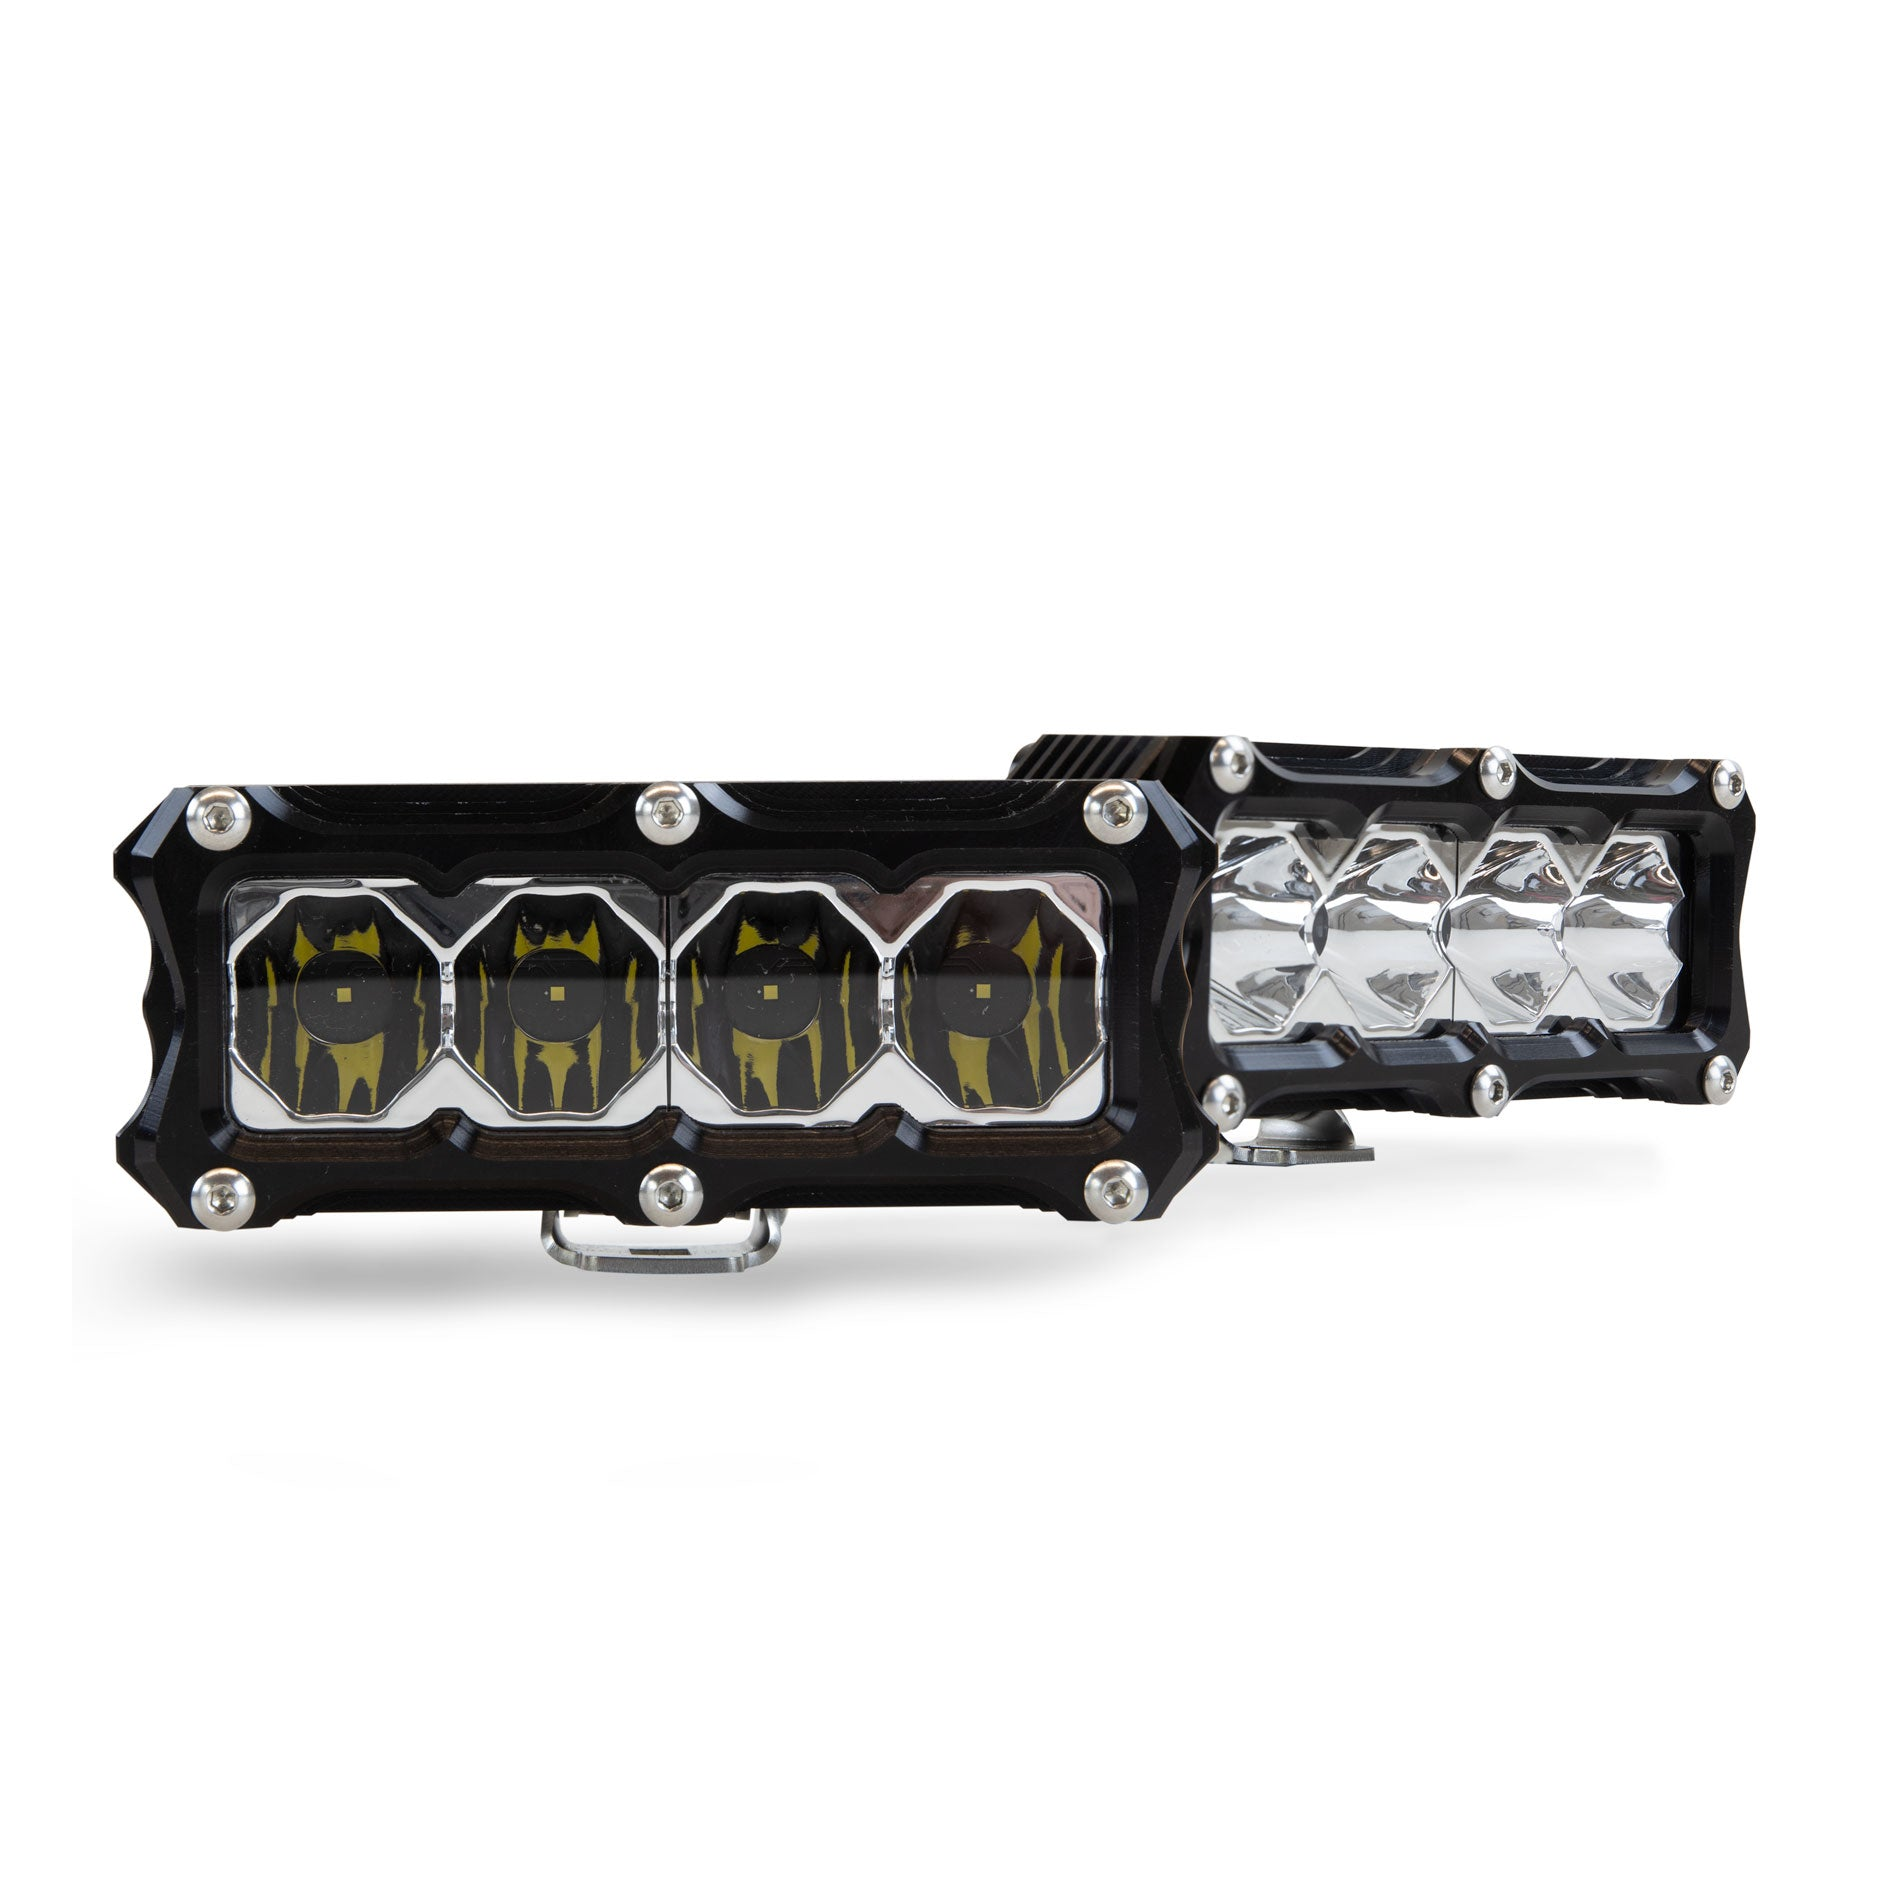 Heretic 6 Series Light Bar - BA-4 Pair Pack: Black Bezel | Stainless Bolts | Flood Reflector | Clear Lens